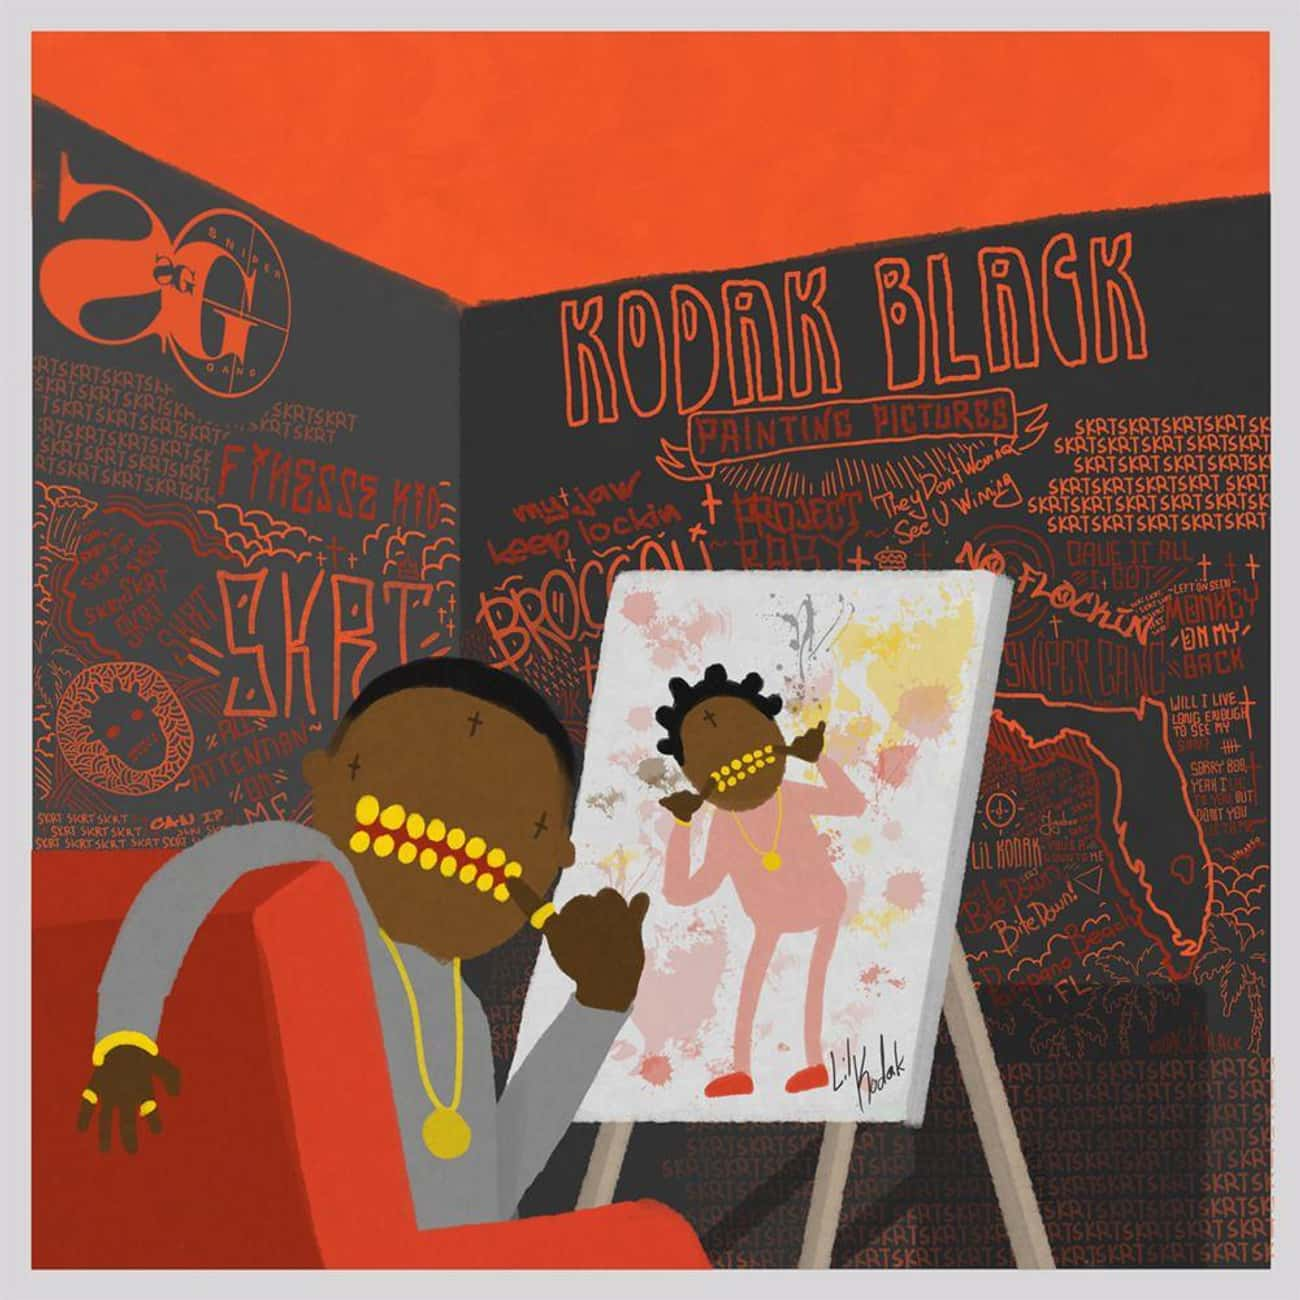 Painting Pictures is listed (or ranked) 2 on the list The Best Kodak Black Albums, Ranked